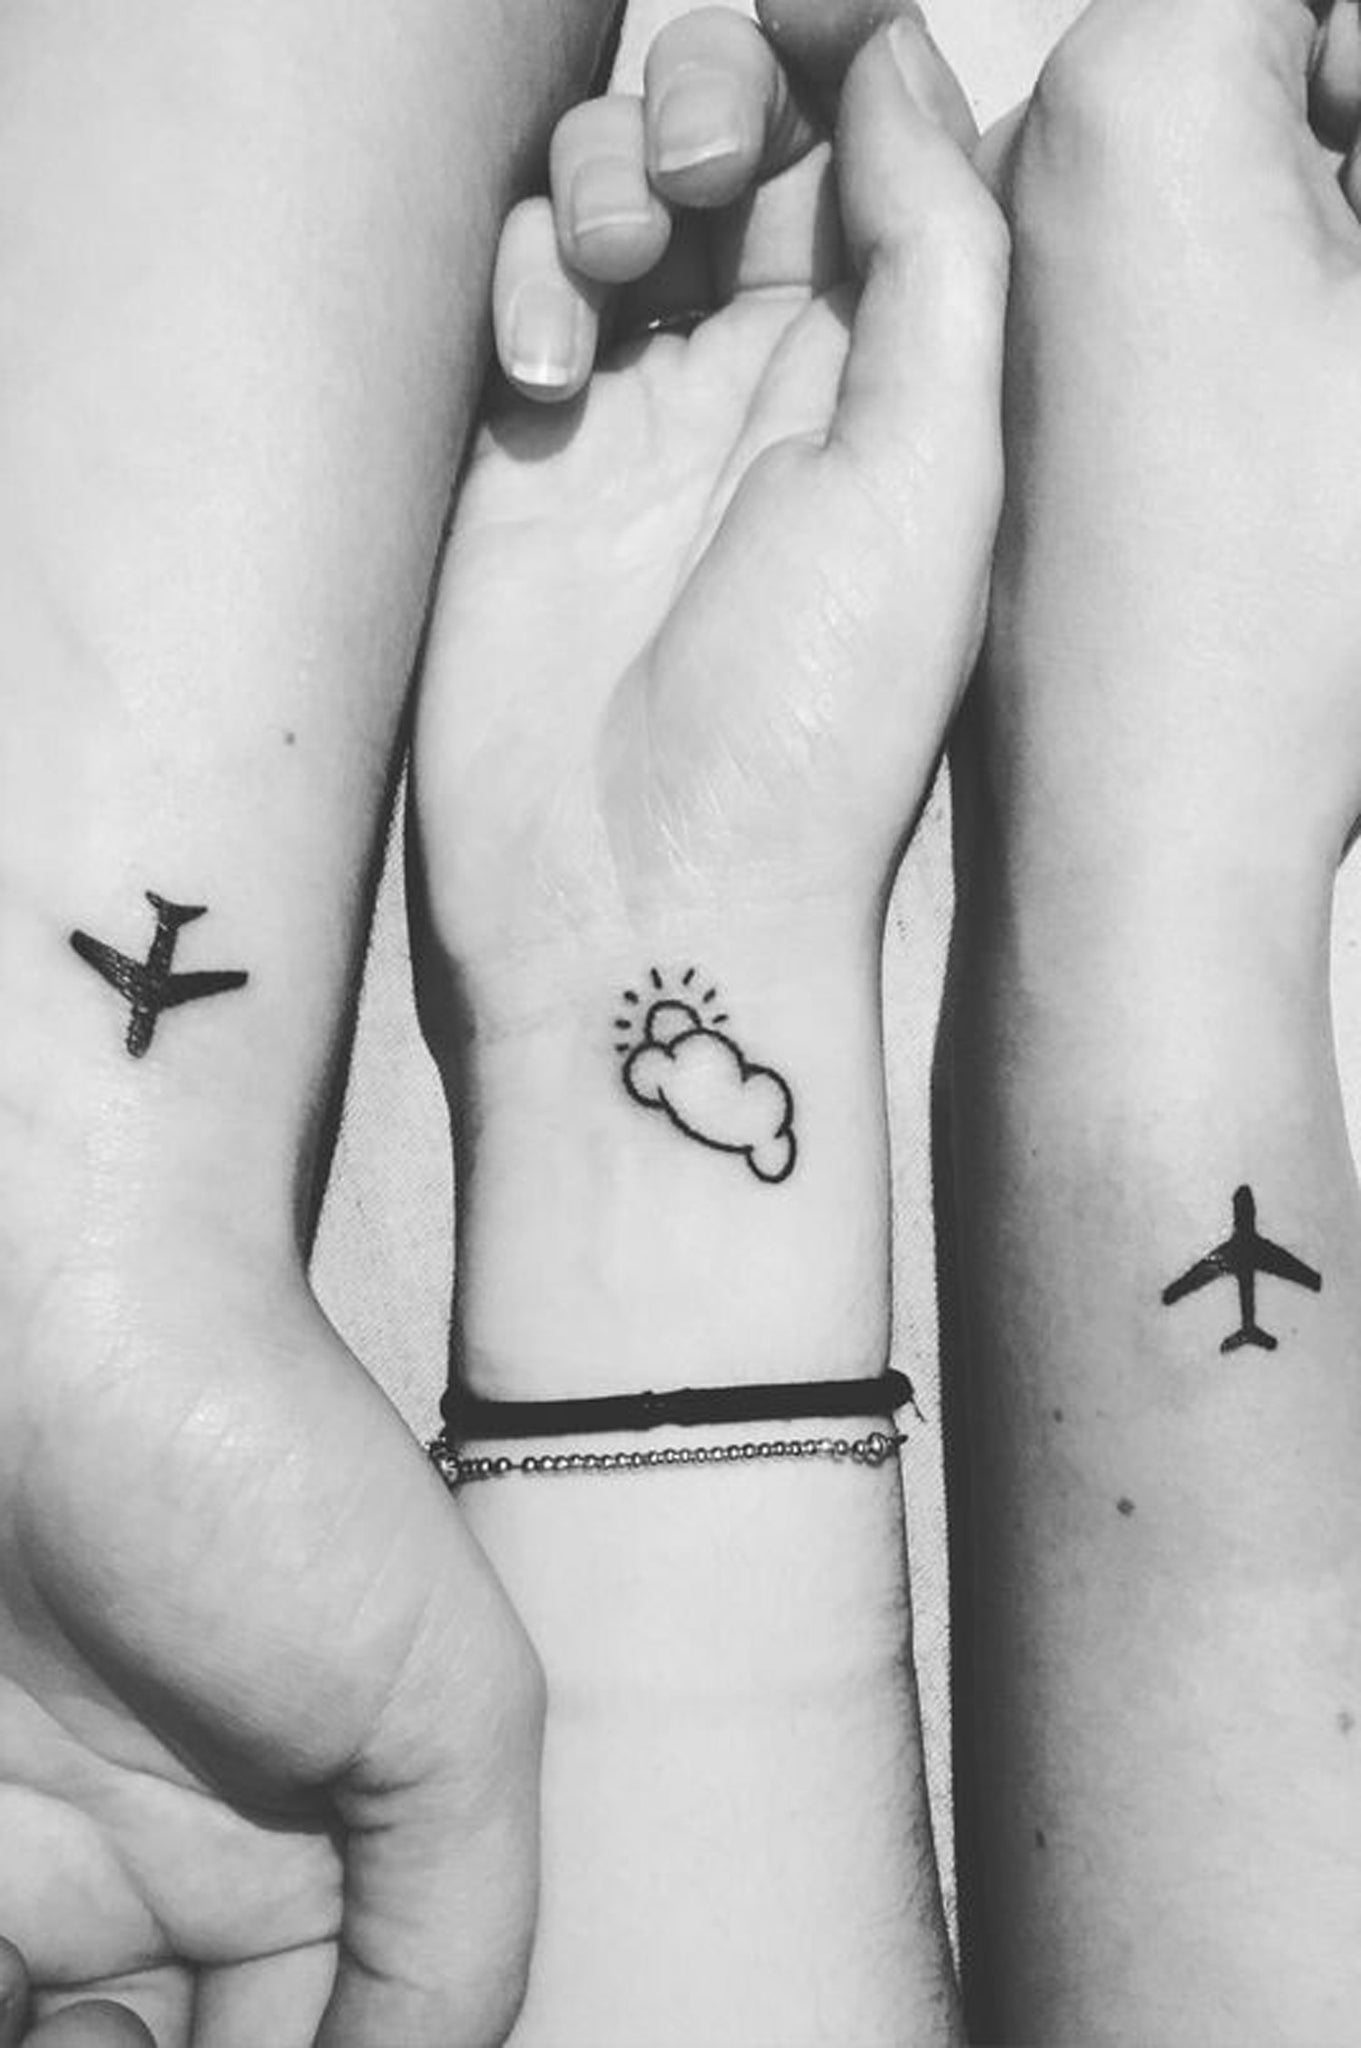 Small Simple Wrist Tattoo Ideas for Travelers - Airplane and Cloud Arm Tatt at MyBodiArt.com